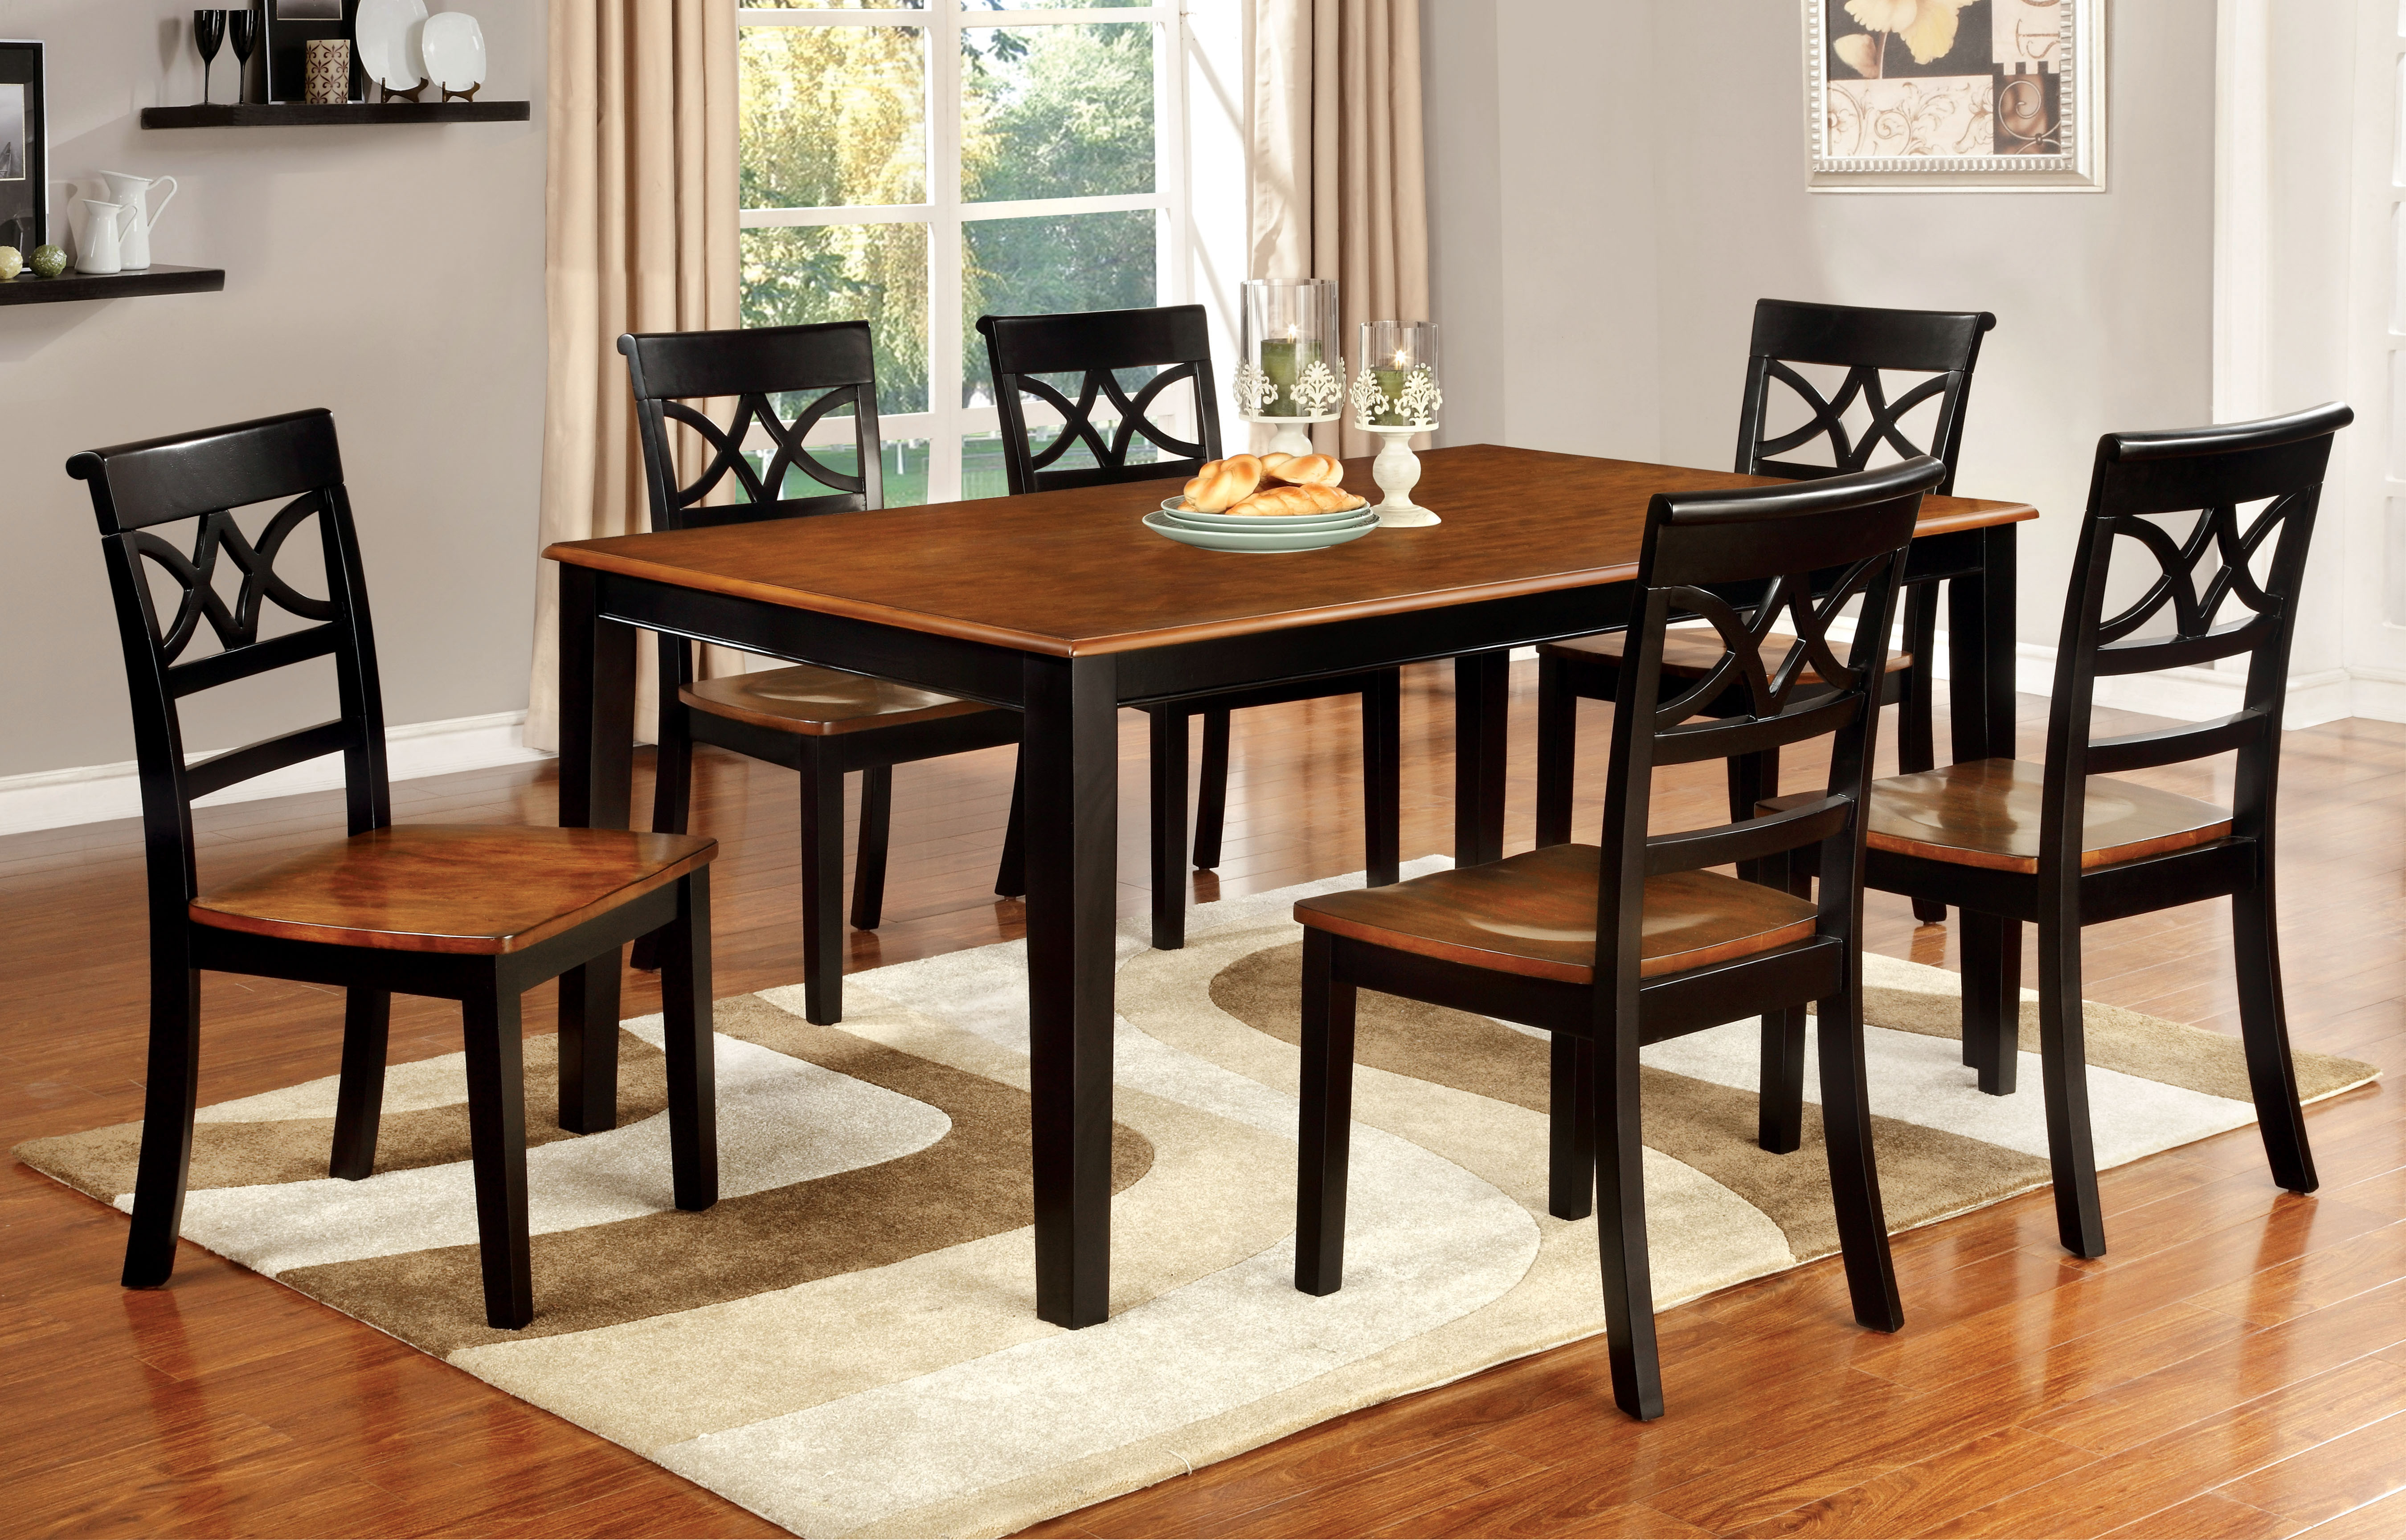 Best ideas about Country Dining Table . Save or Pin Furniture of America Two Tone Adelle Country Style Dining Now.